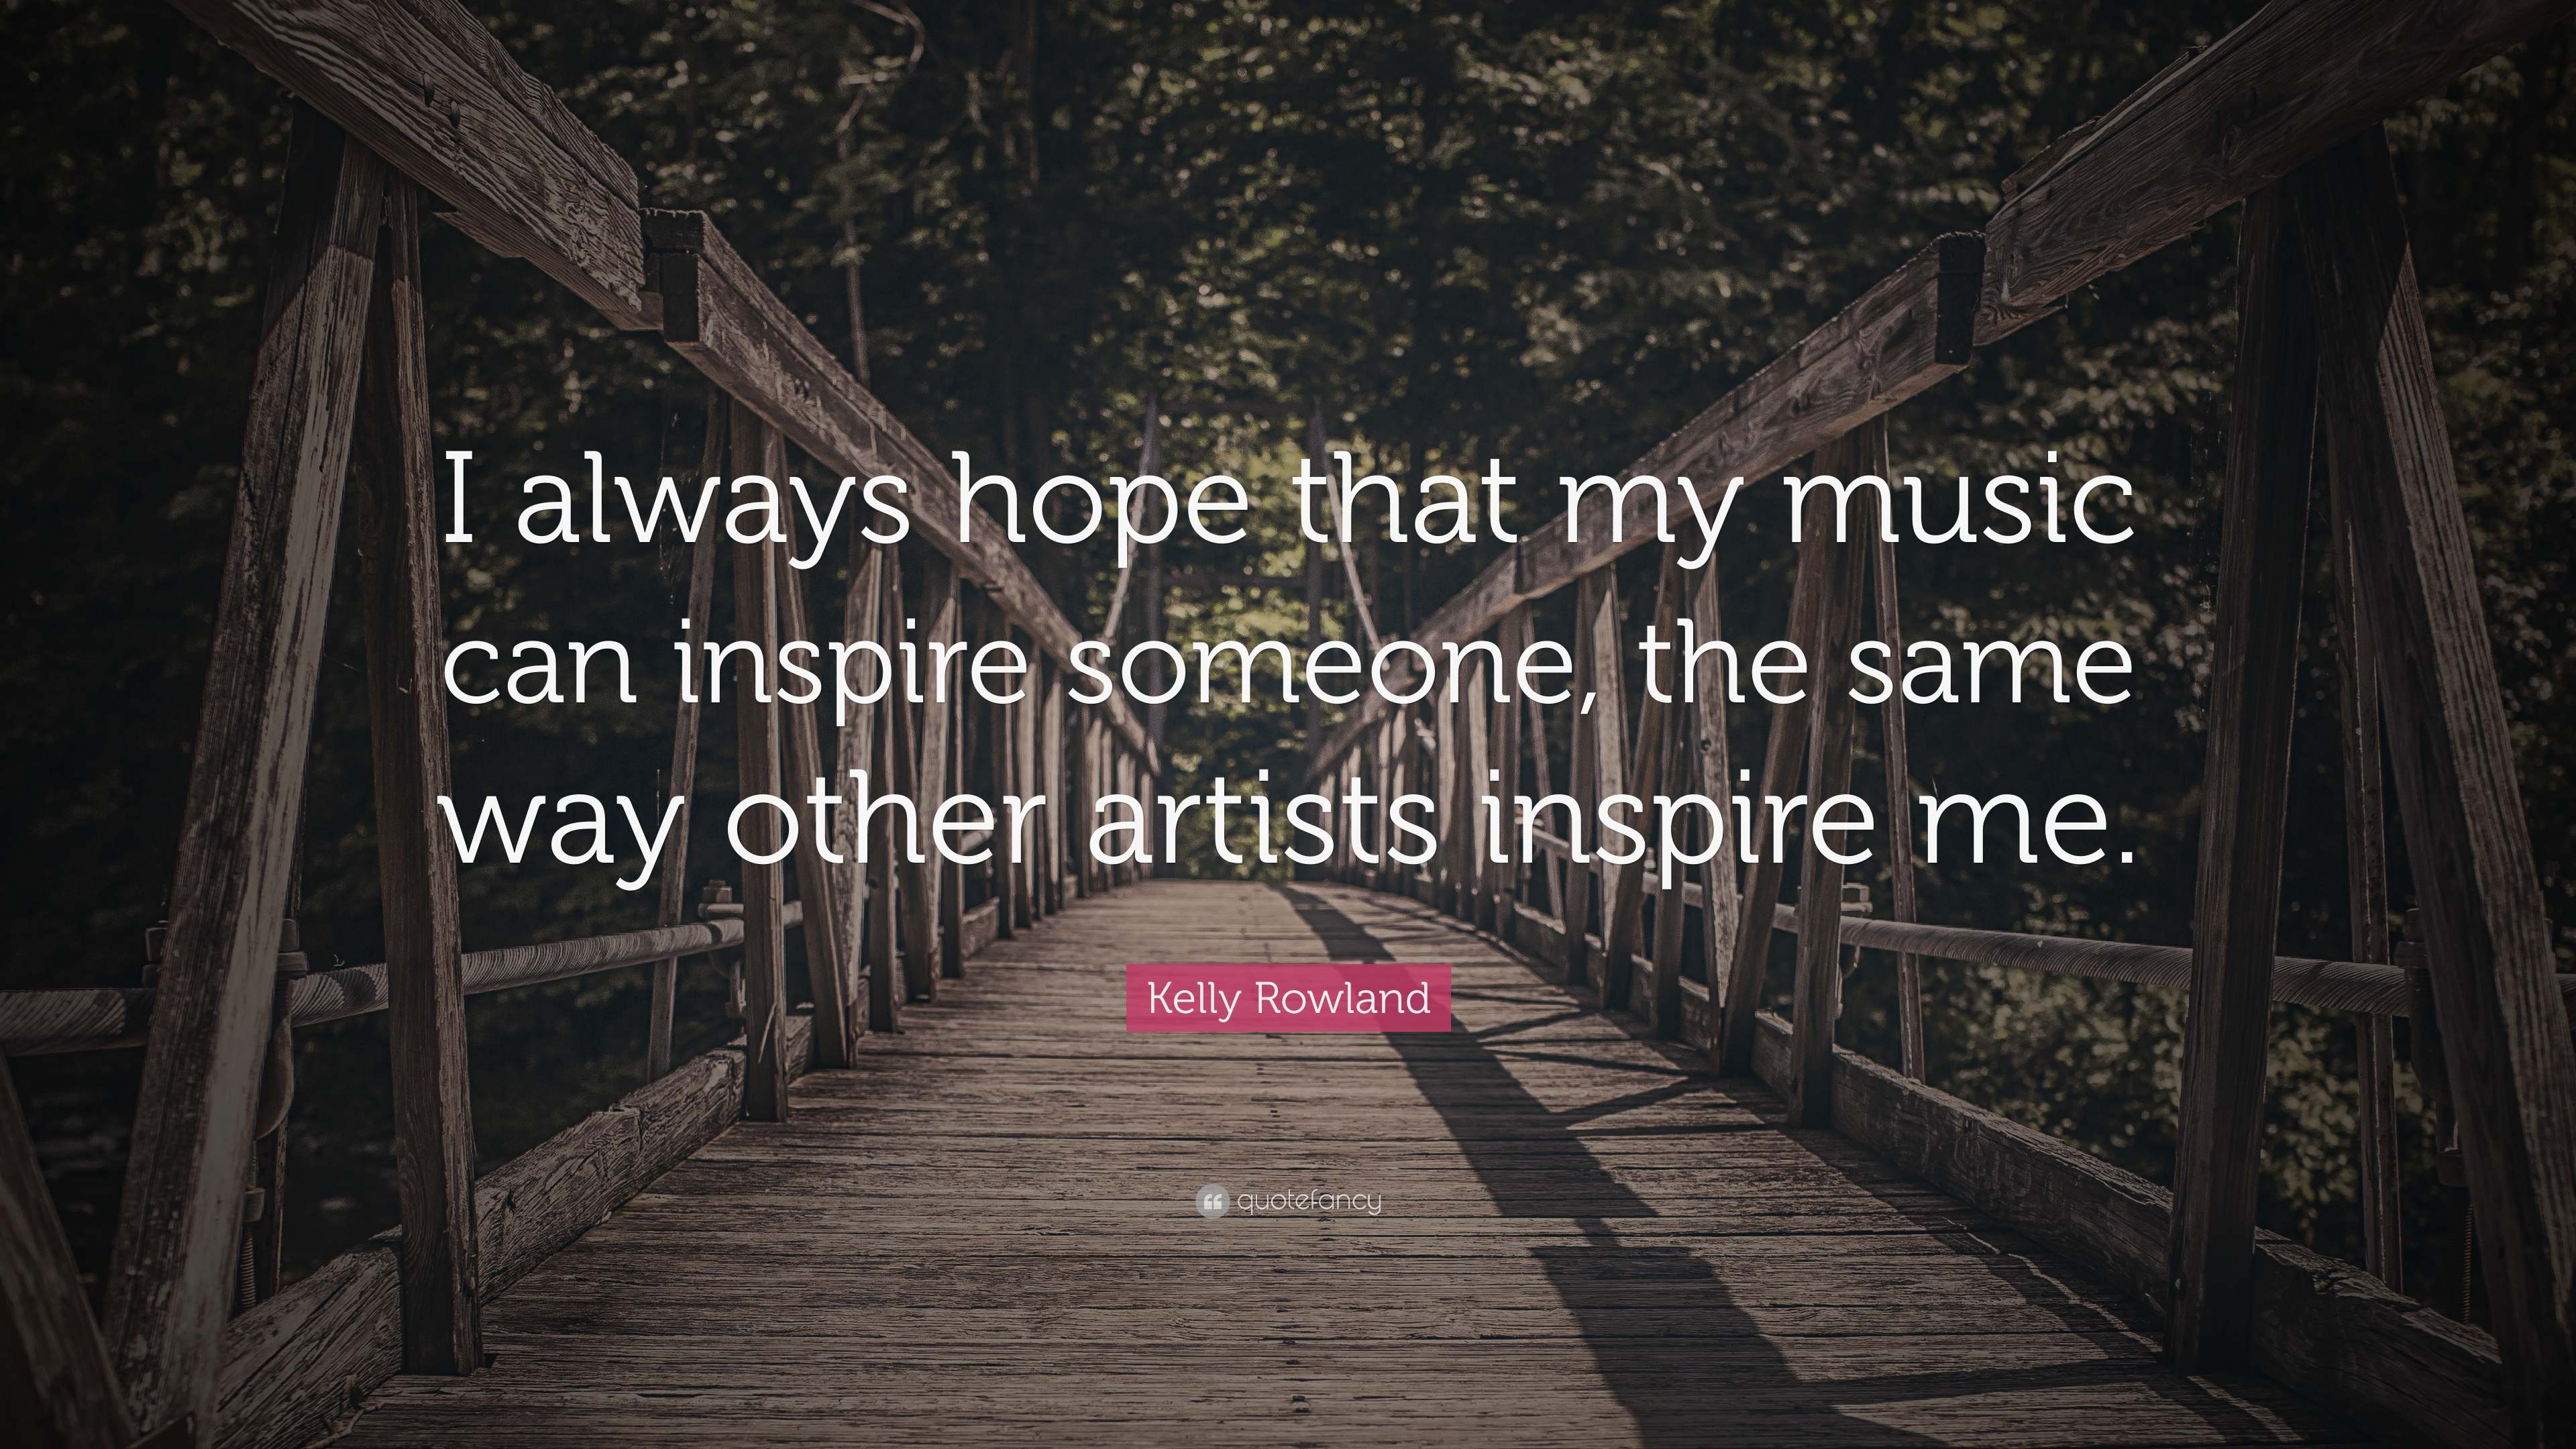 Kelly Rowland Quote: U201cI Always Hope That My Music Can Inspire Someone, The